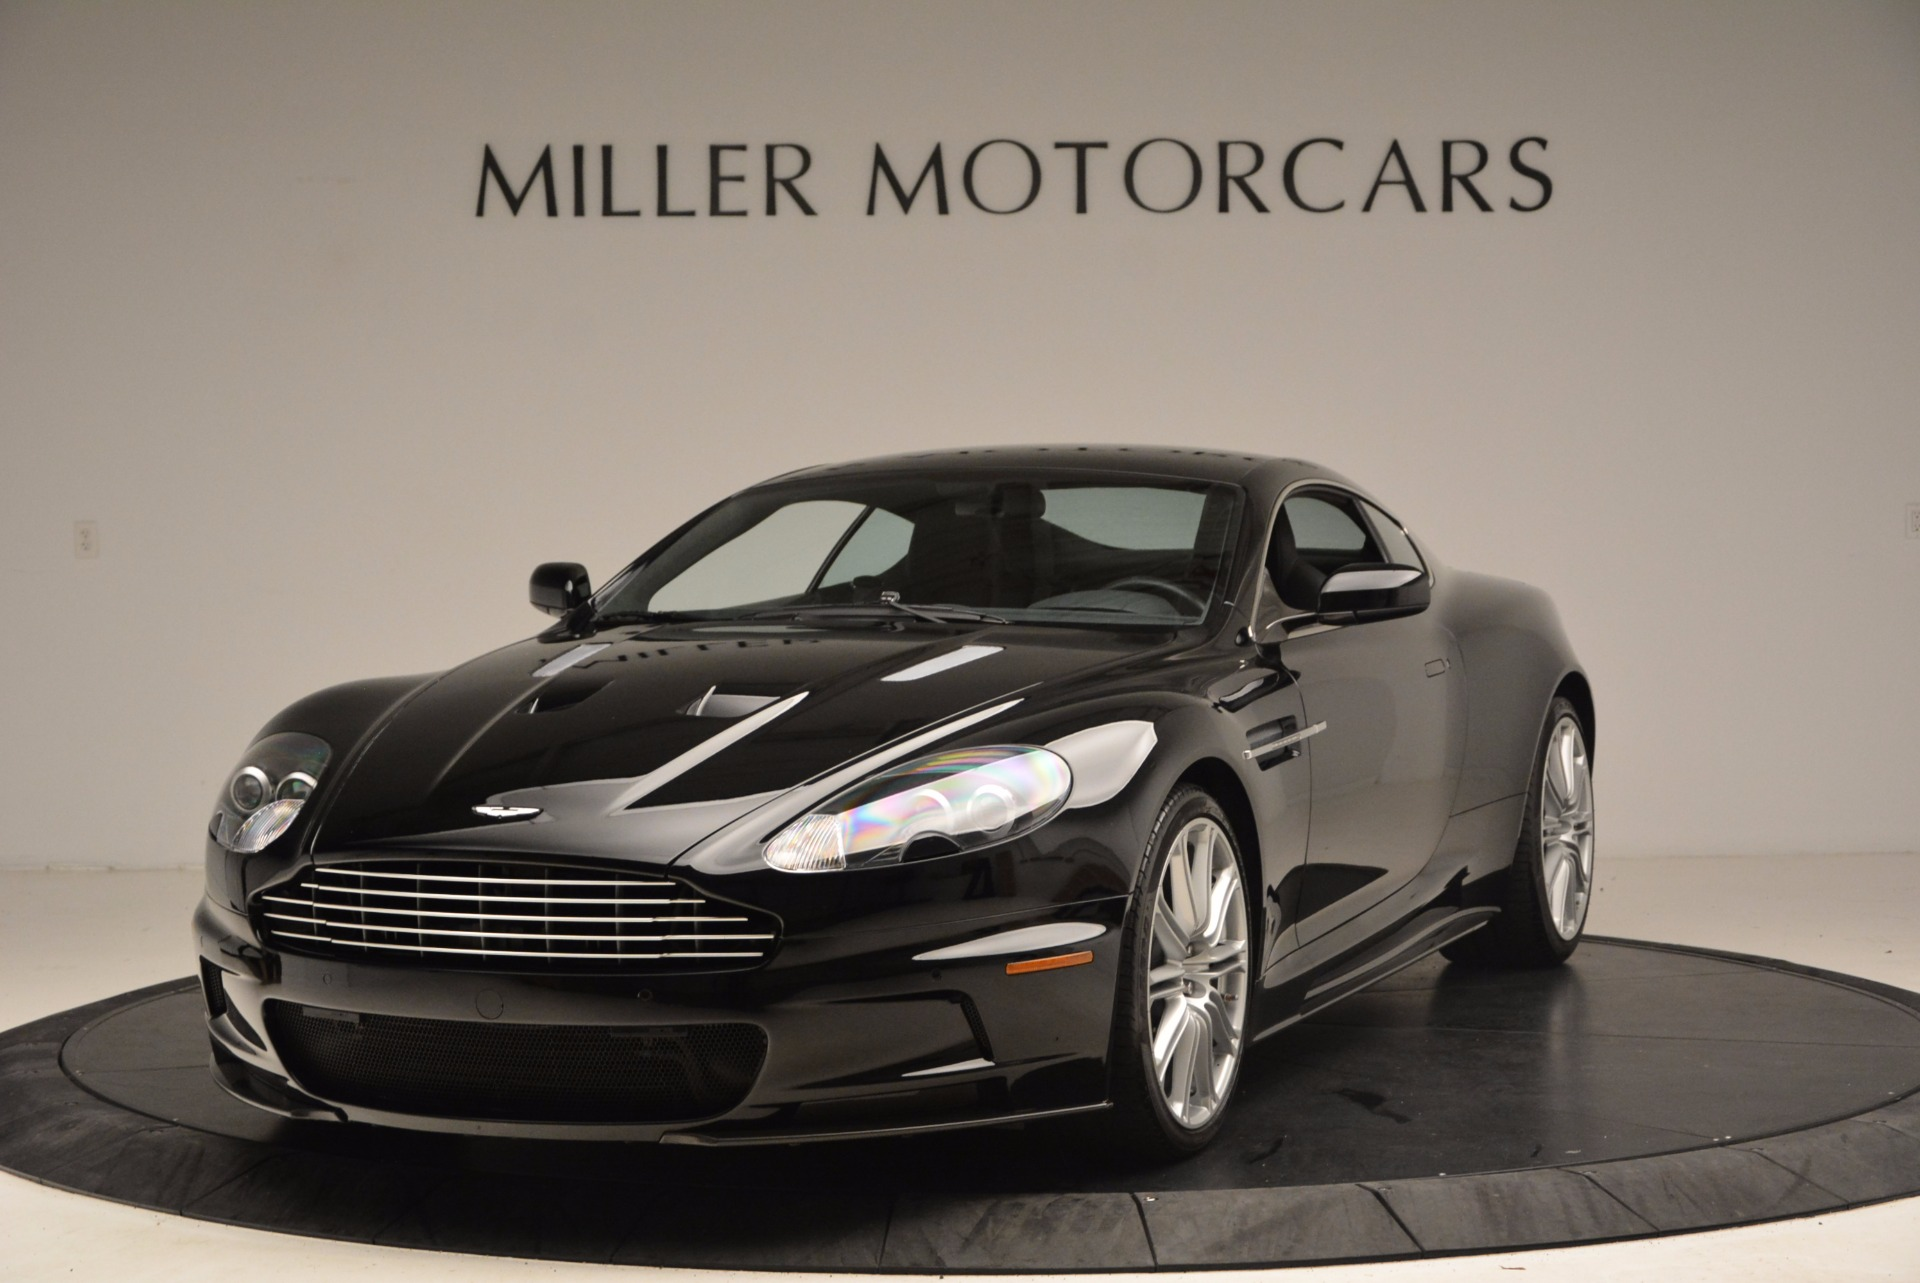 Used 2009 Aston Martin DBS for sale Sold at Bugatti of Greenwich in Greenwich CT 06830 1